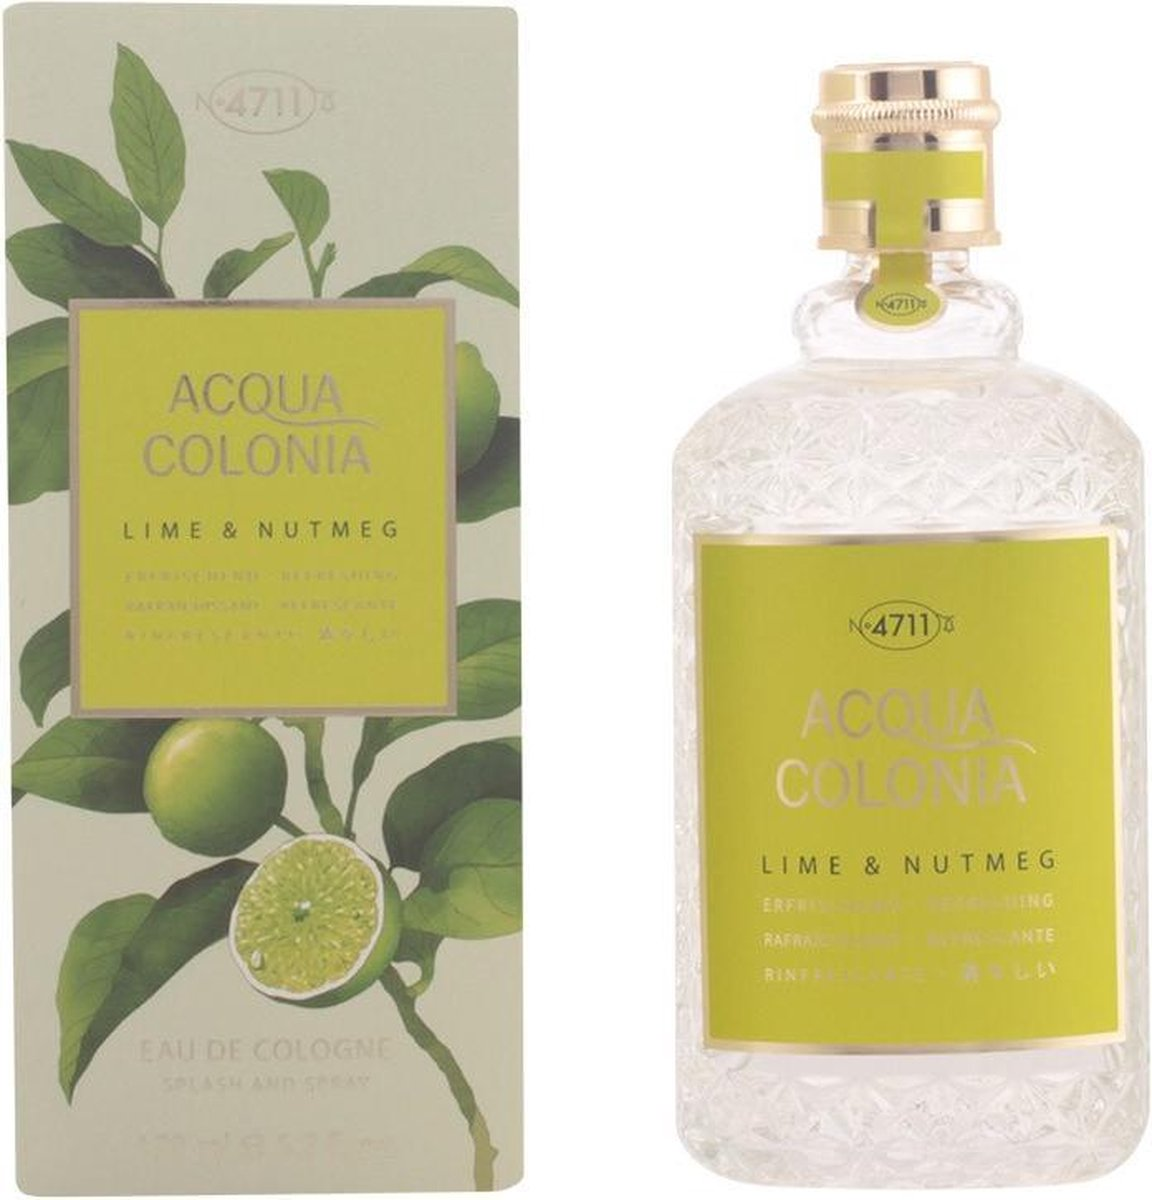 MULTI BUNDEL 2 stuks - 4711 - ACQUA cologne Lime & Nutmeg - eau de cologne - spray 170 ml